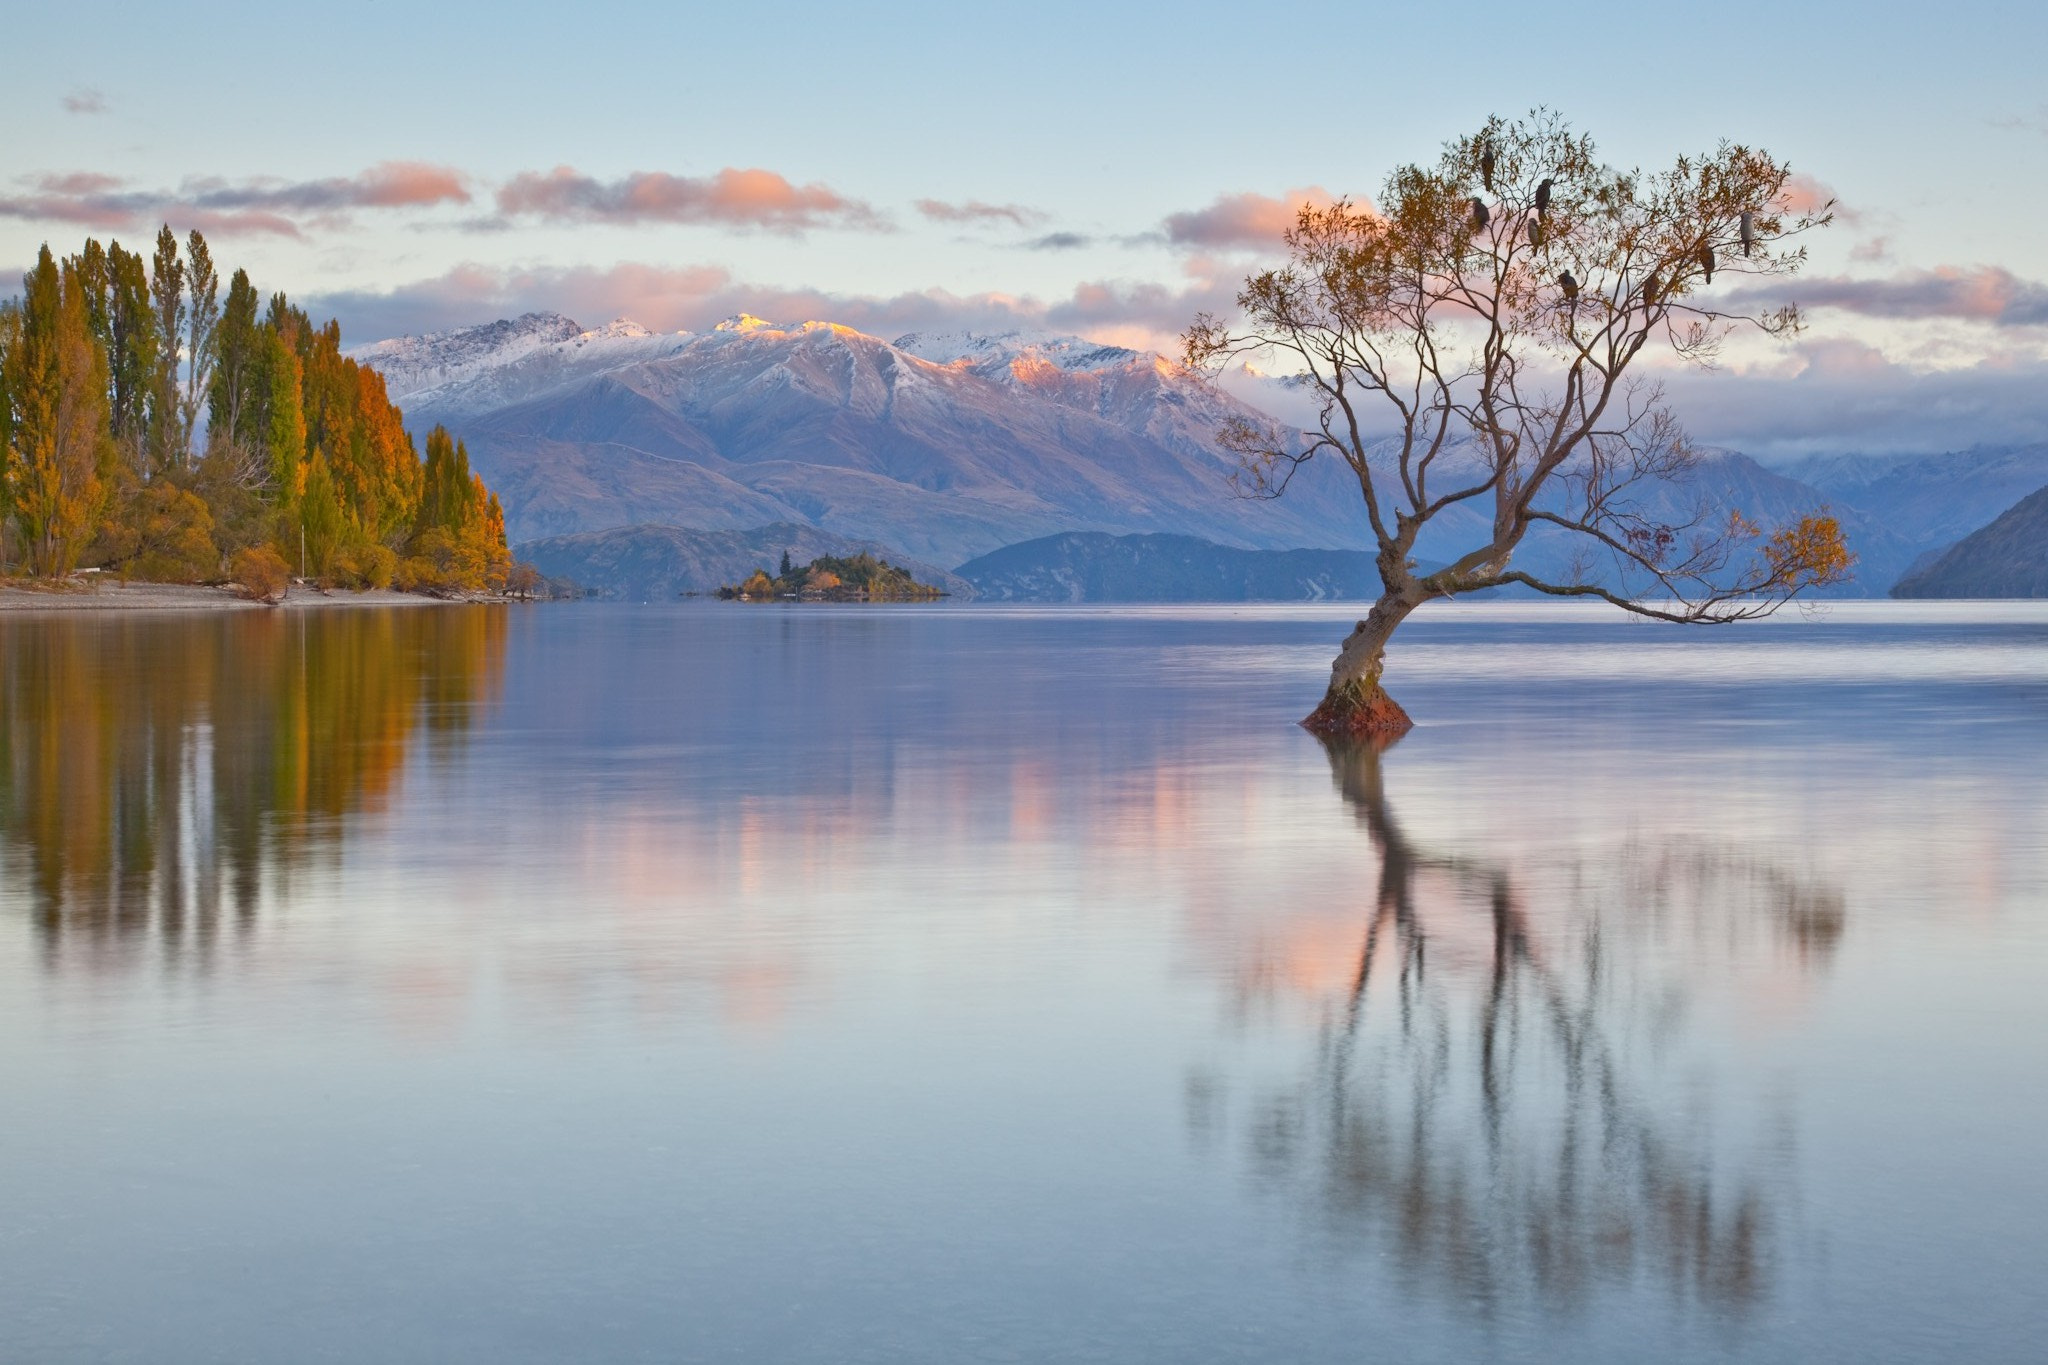 Photograph Lone Willow Lake Wanaka NZ by Colin Bradnam on 500px